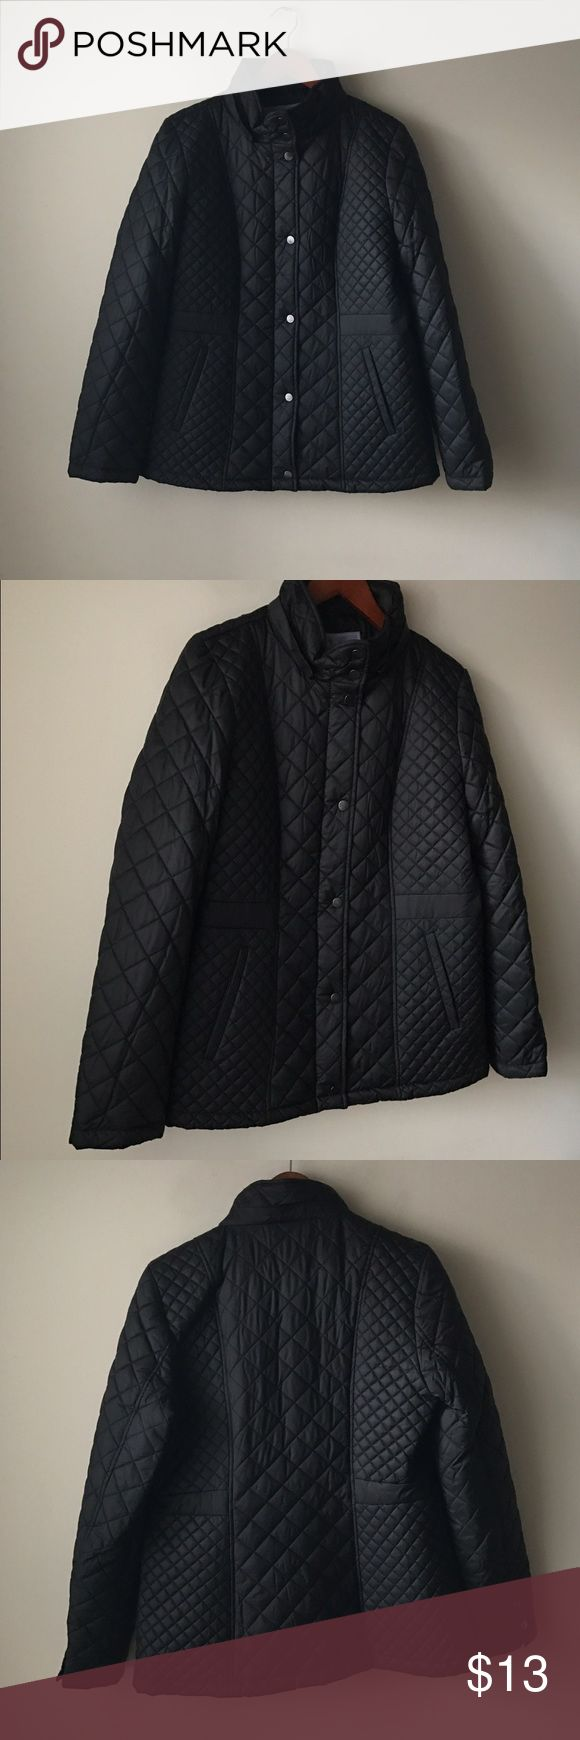 Laura Scott black medium weight quilted jacket Black medium weight quilted jacket - pockets - missing the hood but looks great without it - zipper and button placket closure - size M Laura Scott Jackets & Coats